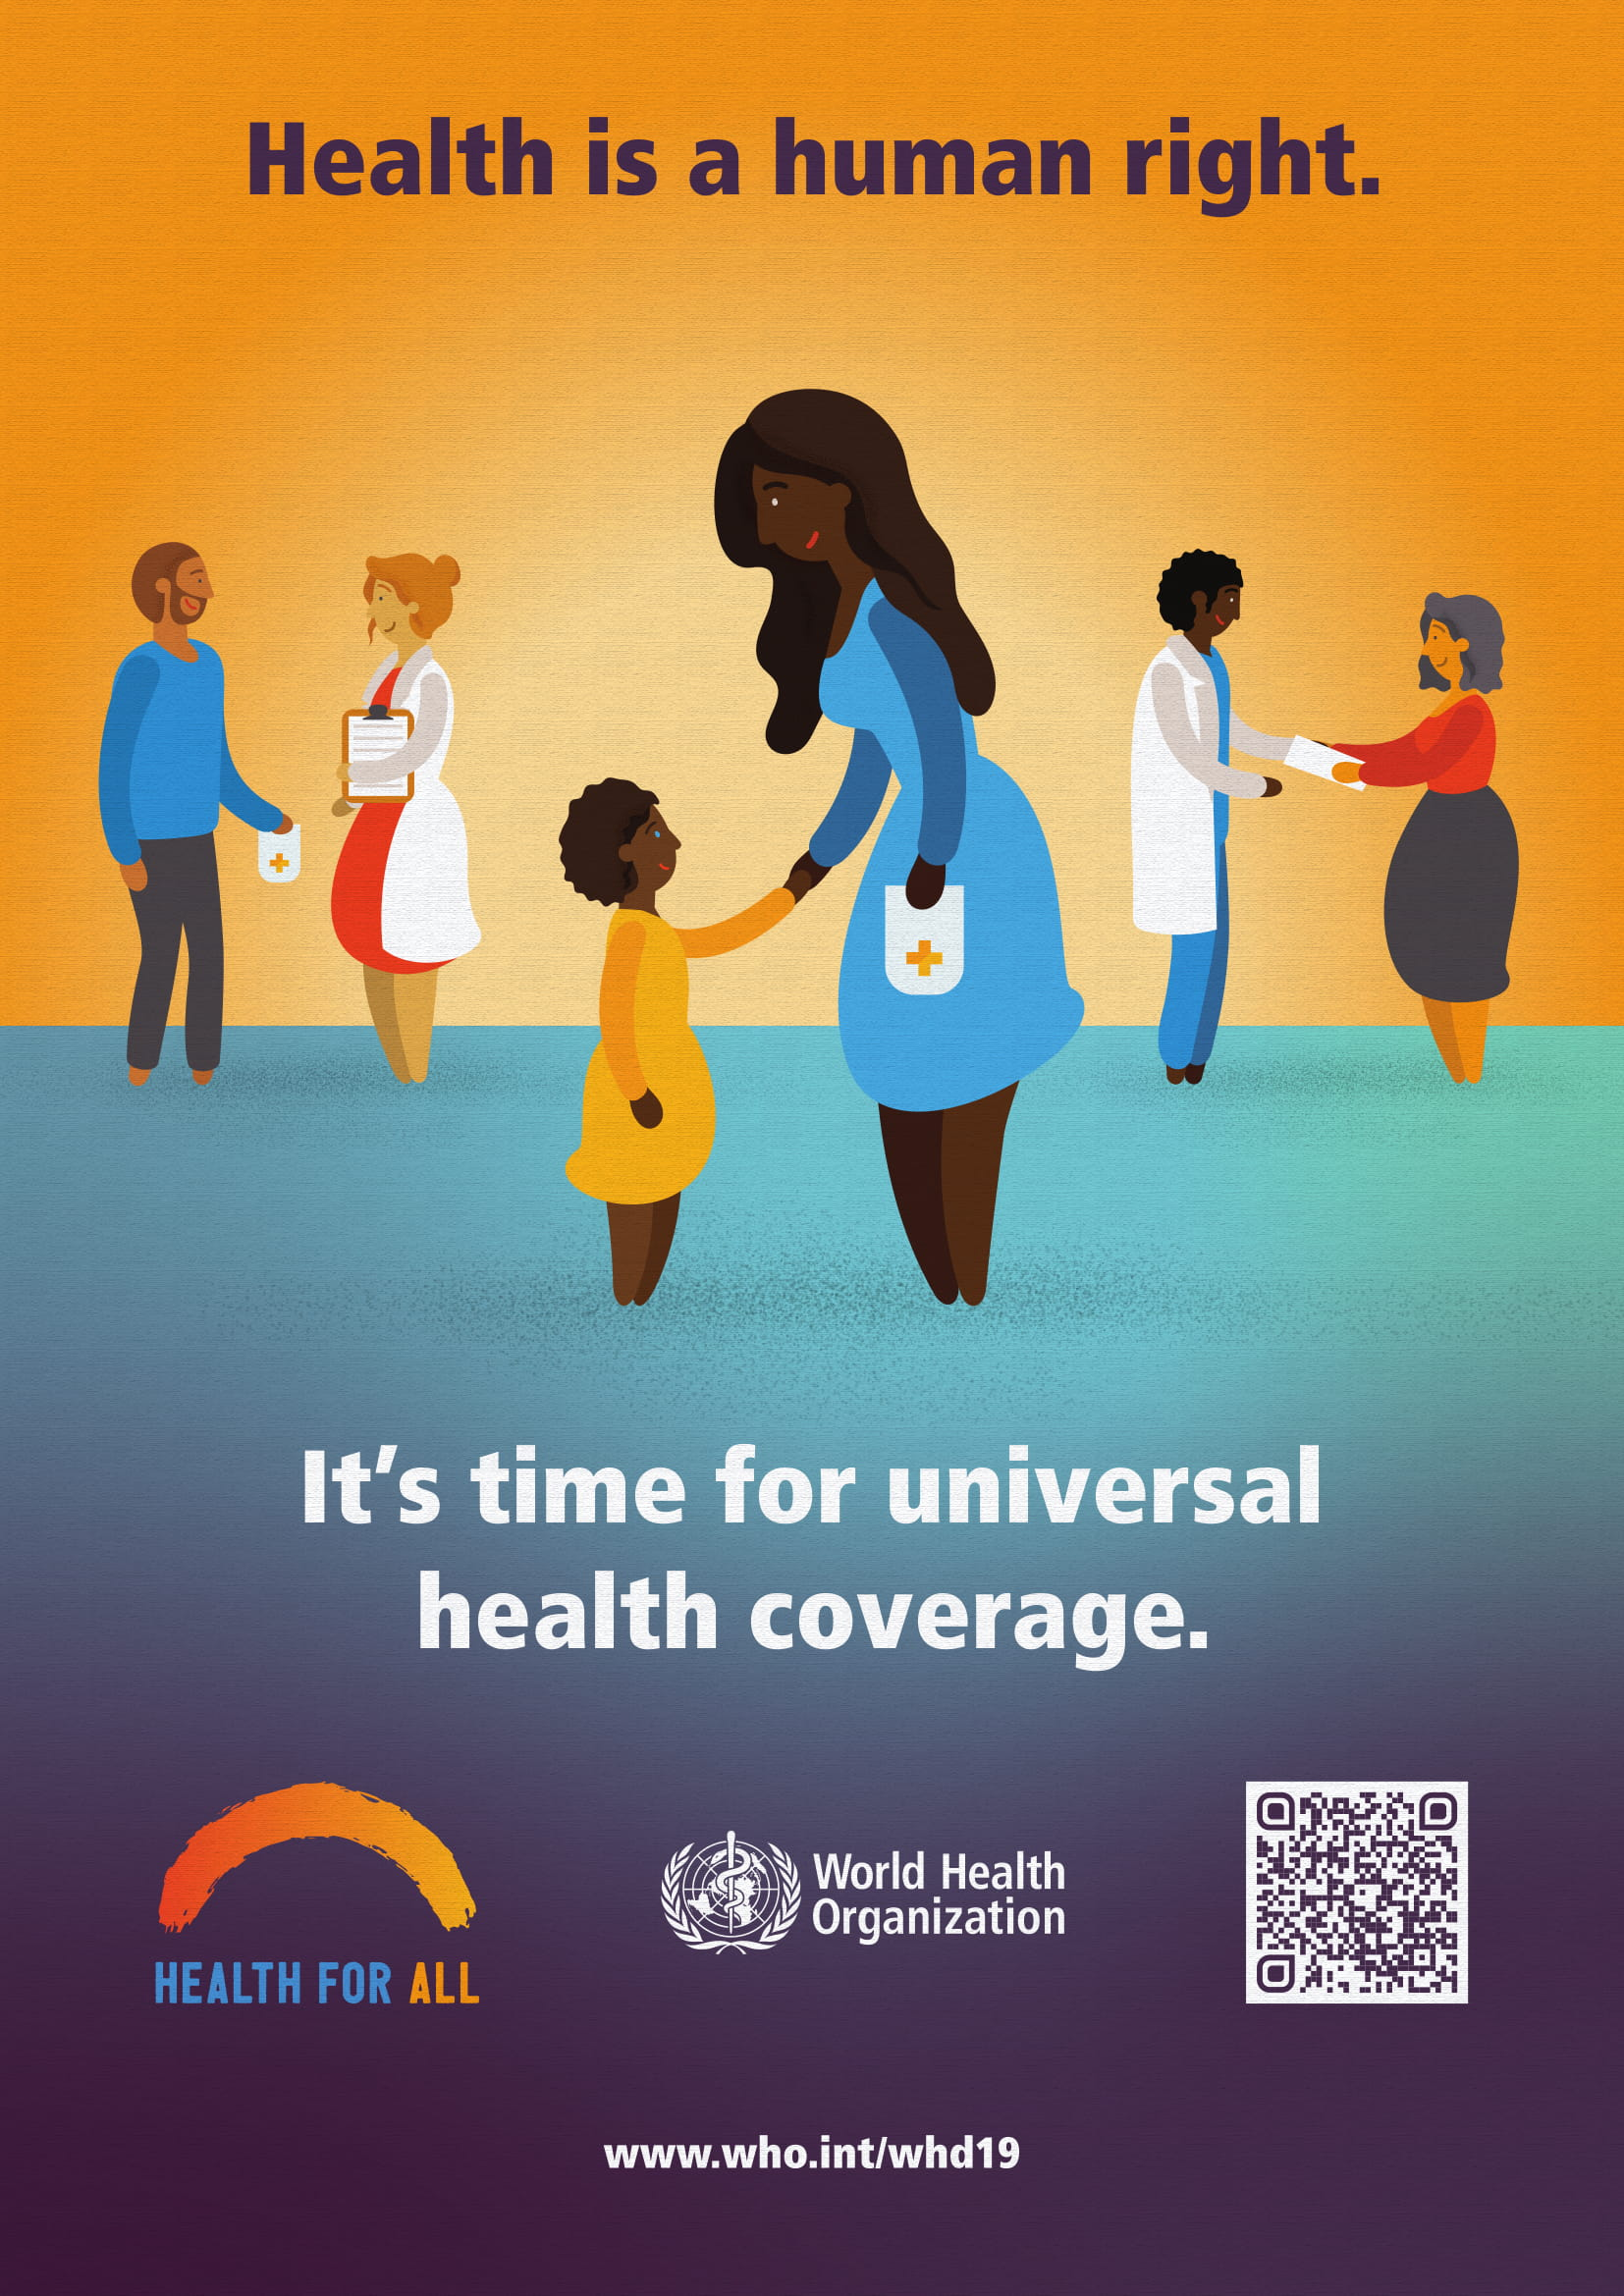 world-health-day-2019-poster-health-human-right-1